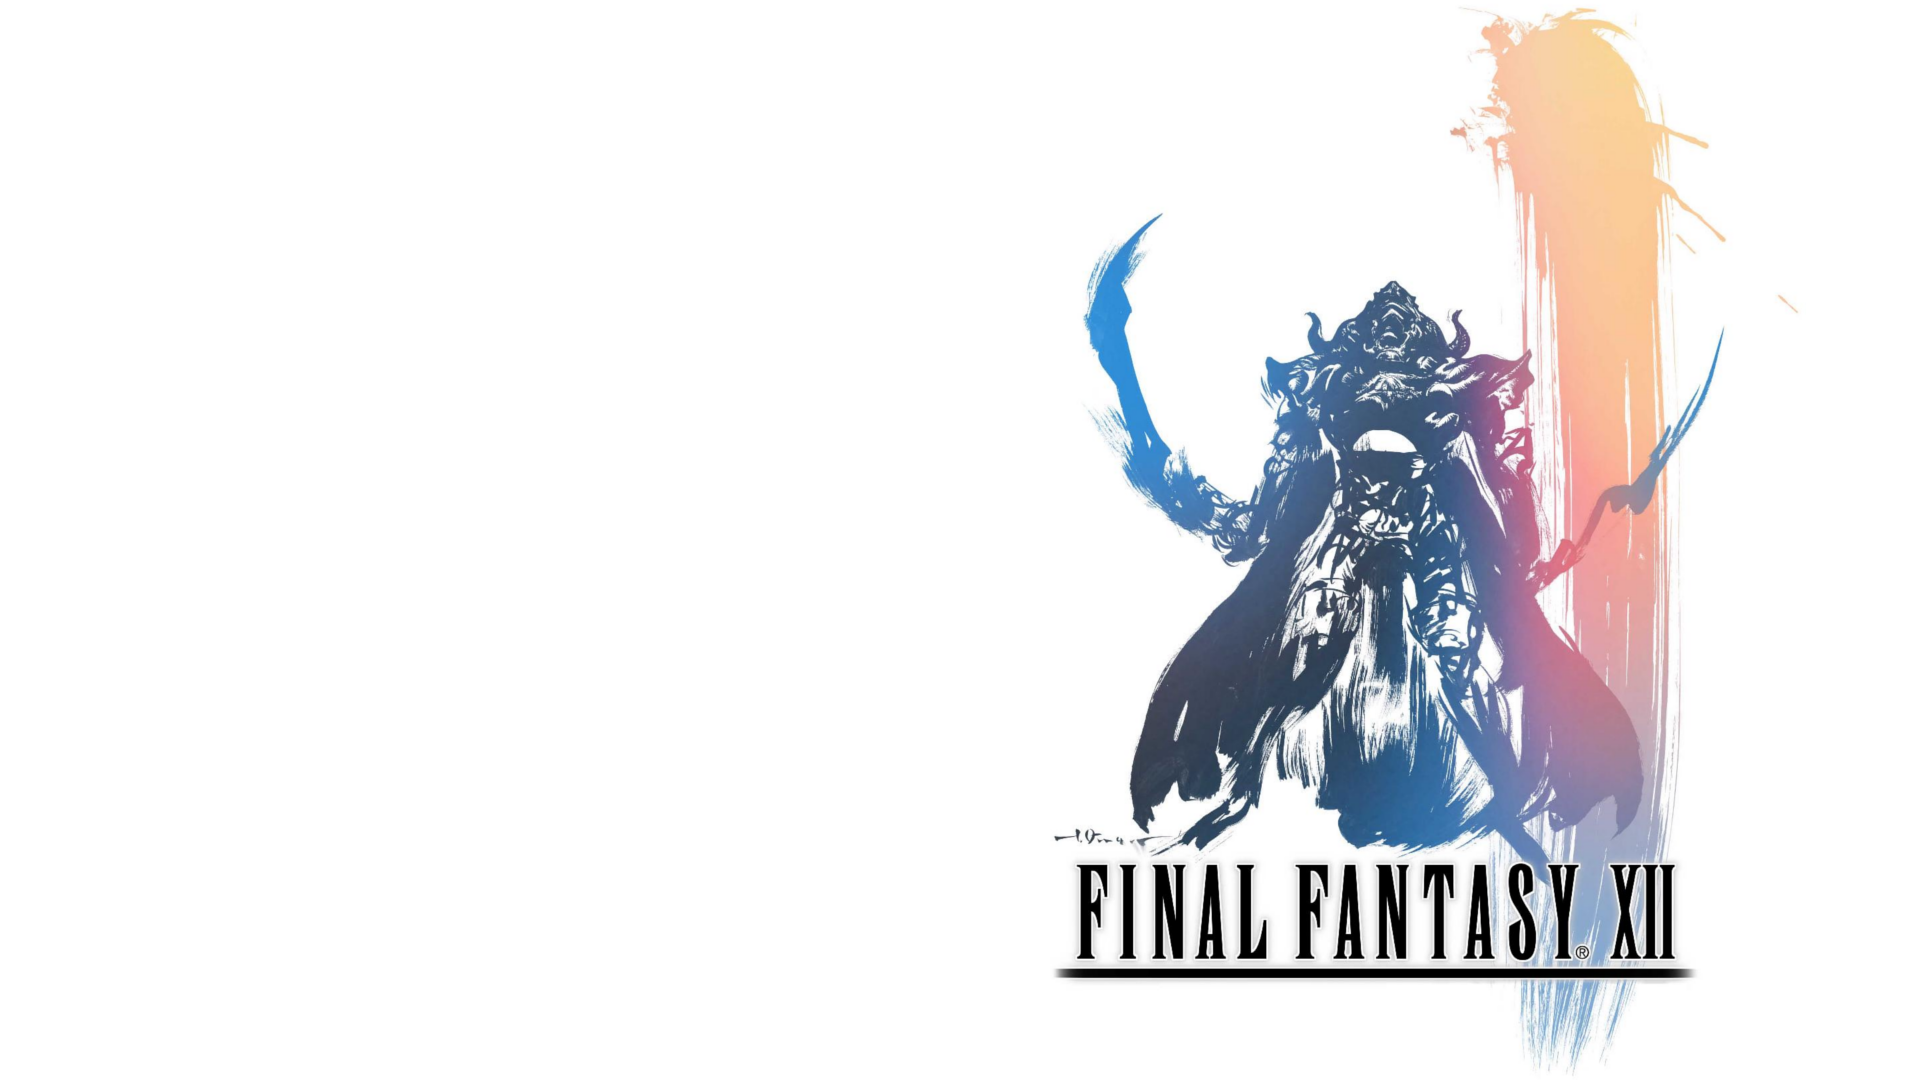 Final Fantasy Xii Hd Wallpaper Background Image 1920x1080 Id